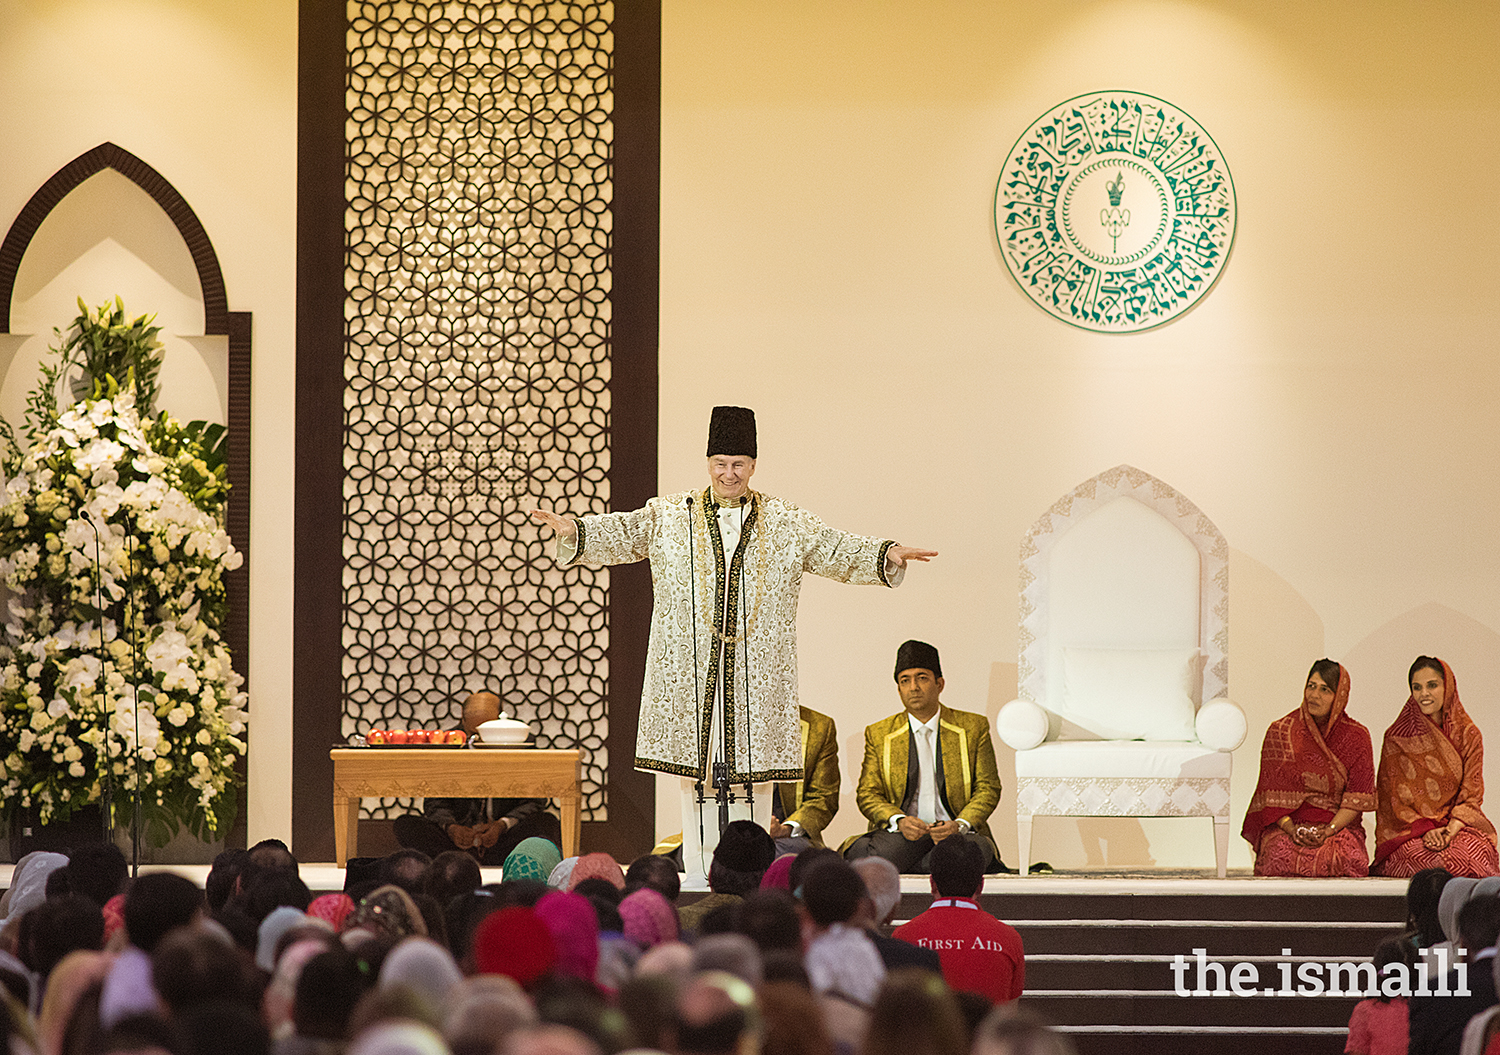 Aga France Mawlana Hazar Imam Grants Darbar To Jamat In The United